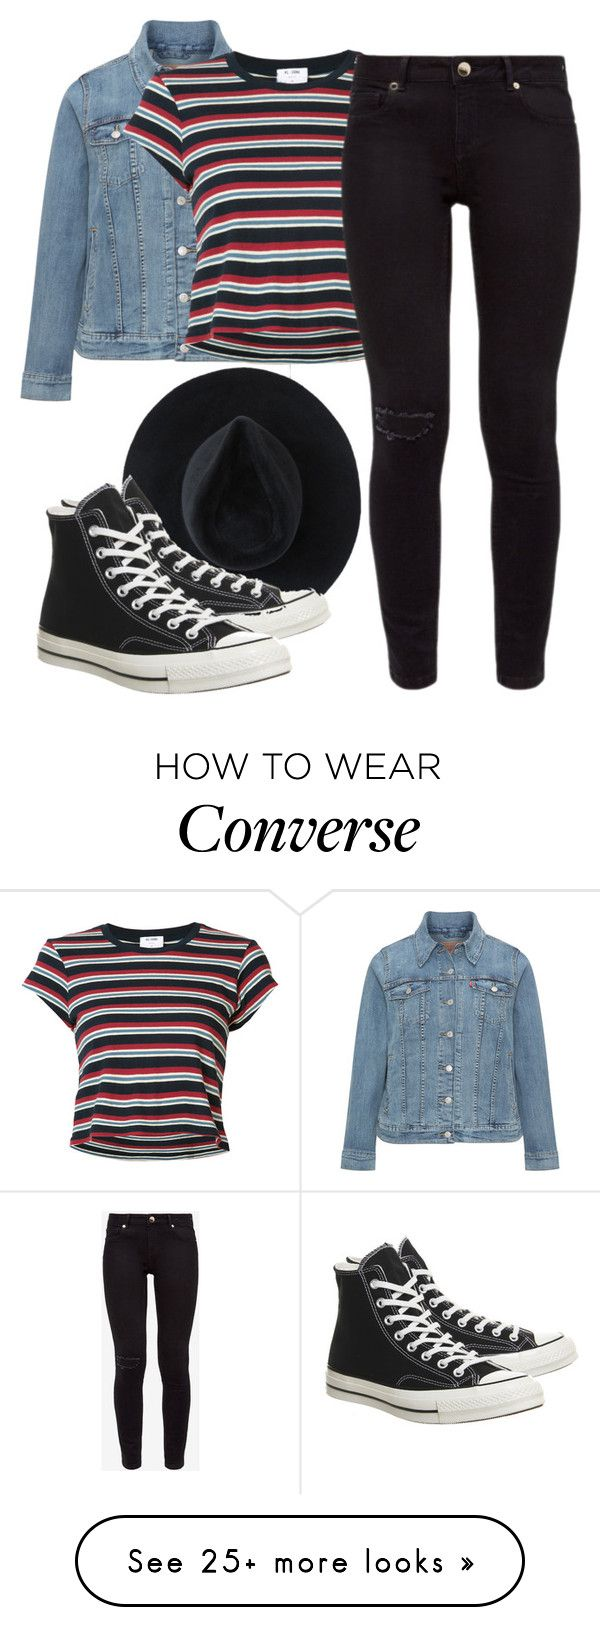 """Untitled #1655"" by milesofsmiles12345 on Polyvore featuring Levi's, Ryan Roche, RE/DONE, Ted Baker and Converse"